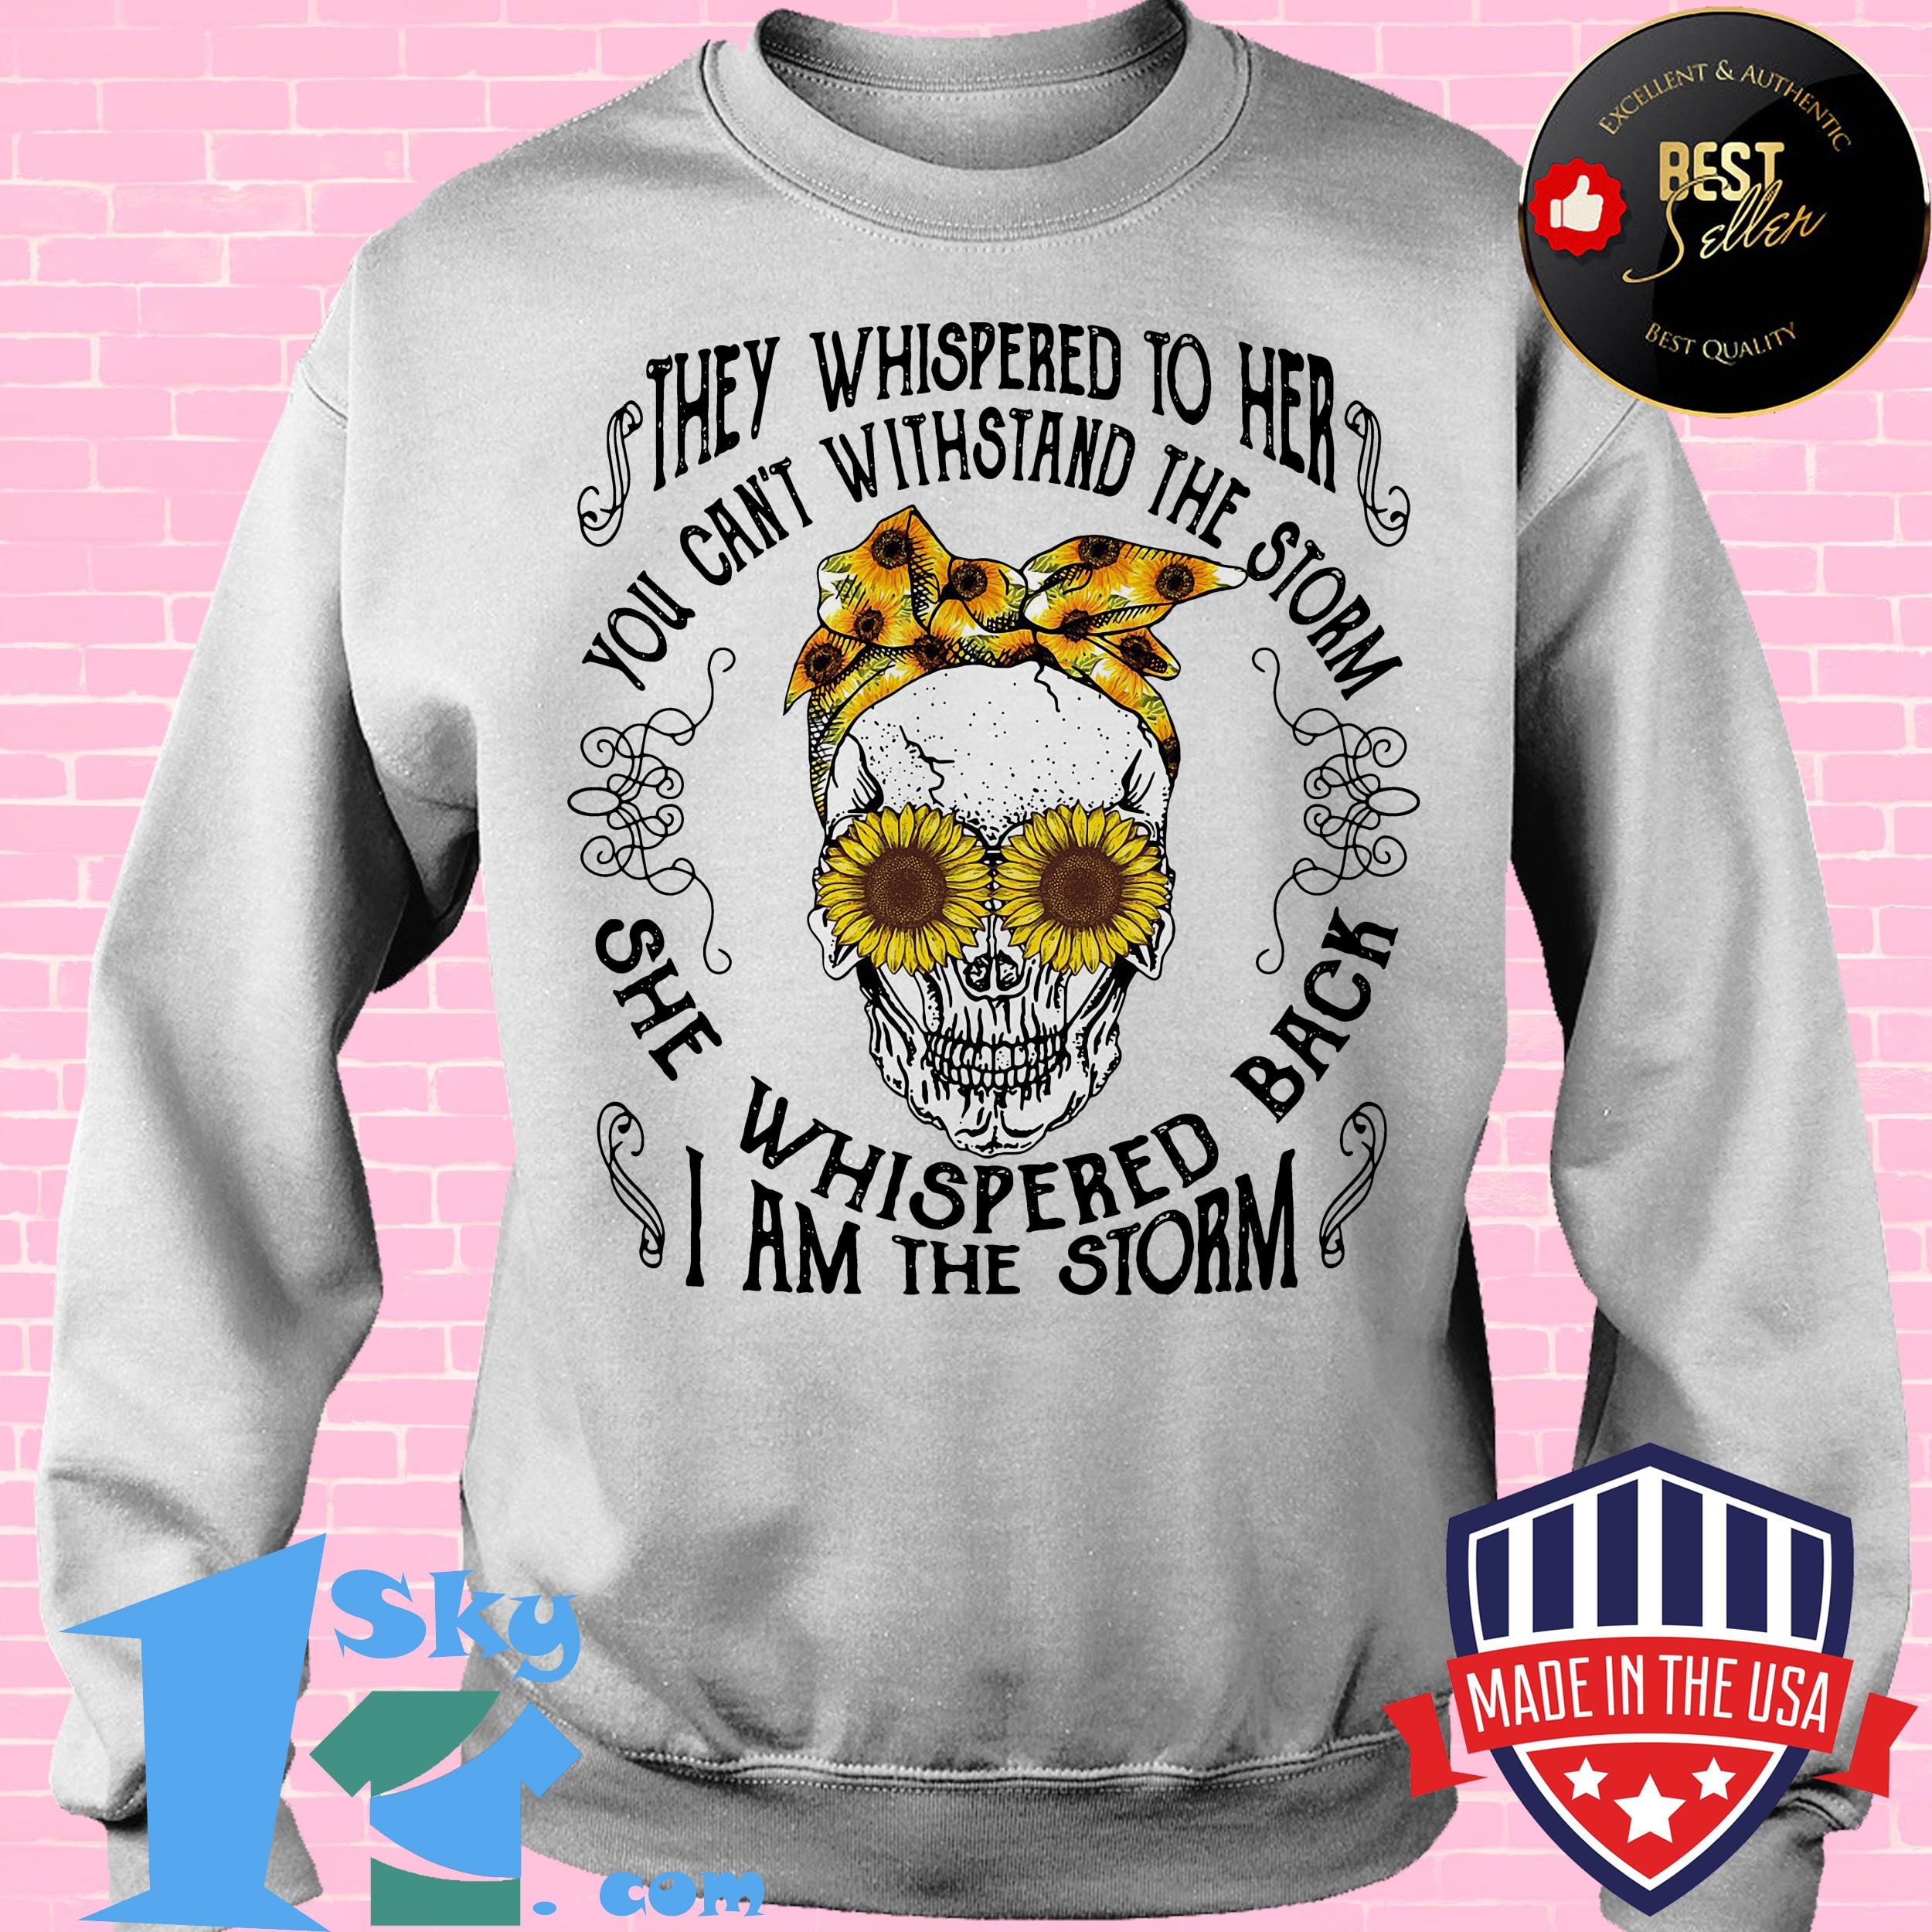 they whispered to her you cant with stand the storm she whispered back sunflower skull sweatshirt - They Whispered To Her You Can't With Stand The Storm She Whispered Back Sunflower Skull shirt